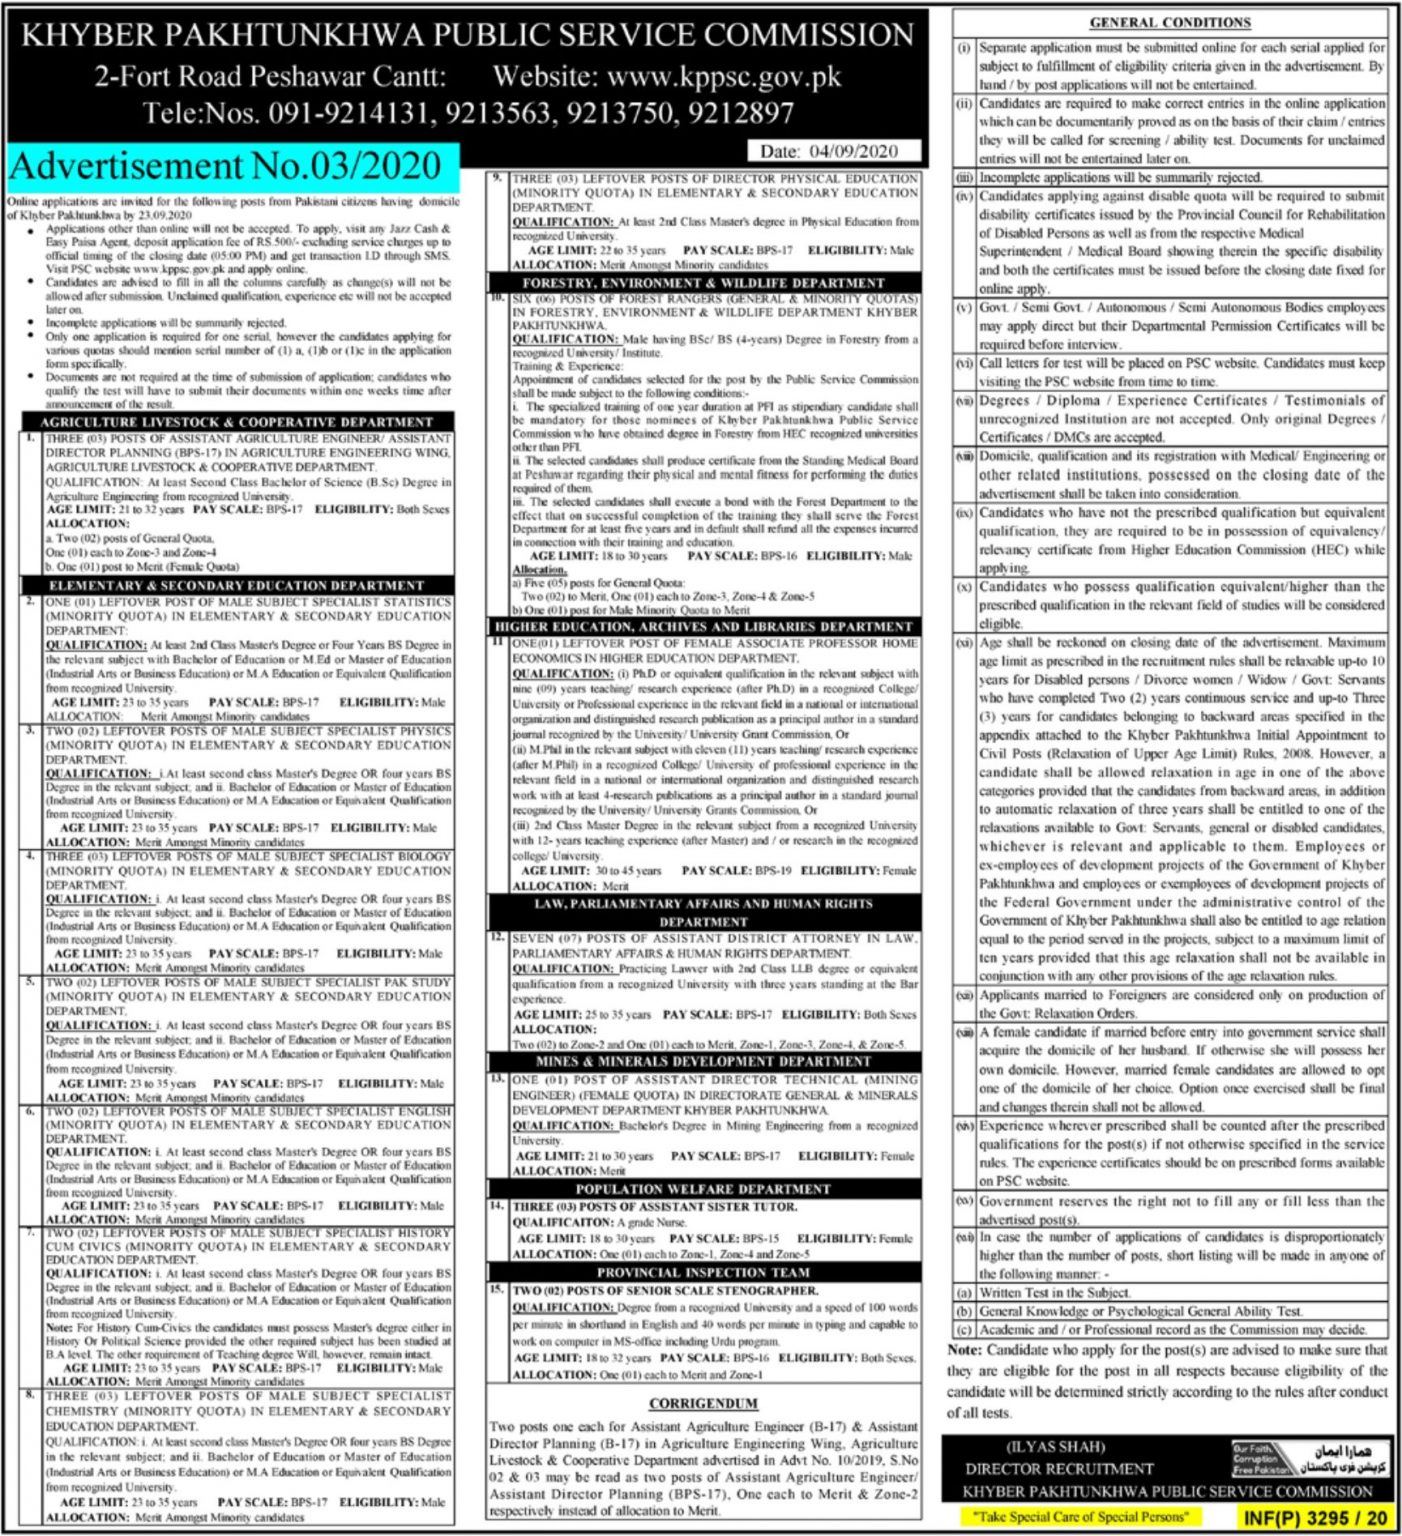 KPPSC Jobs 2020 latest